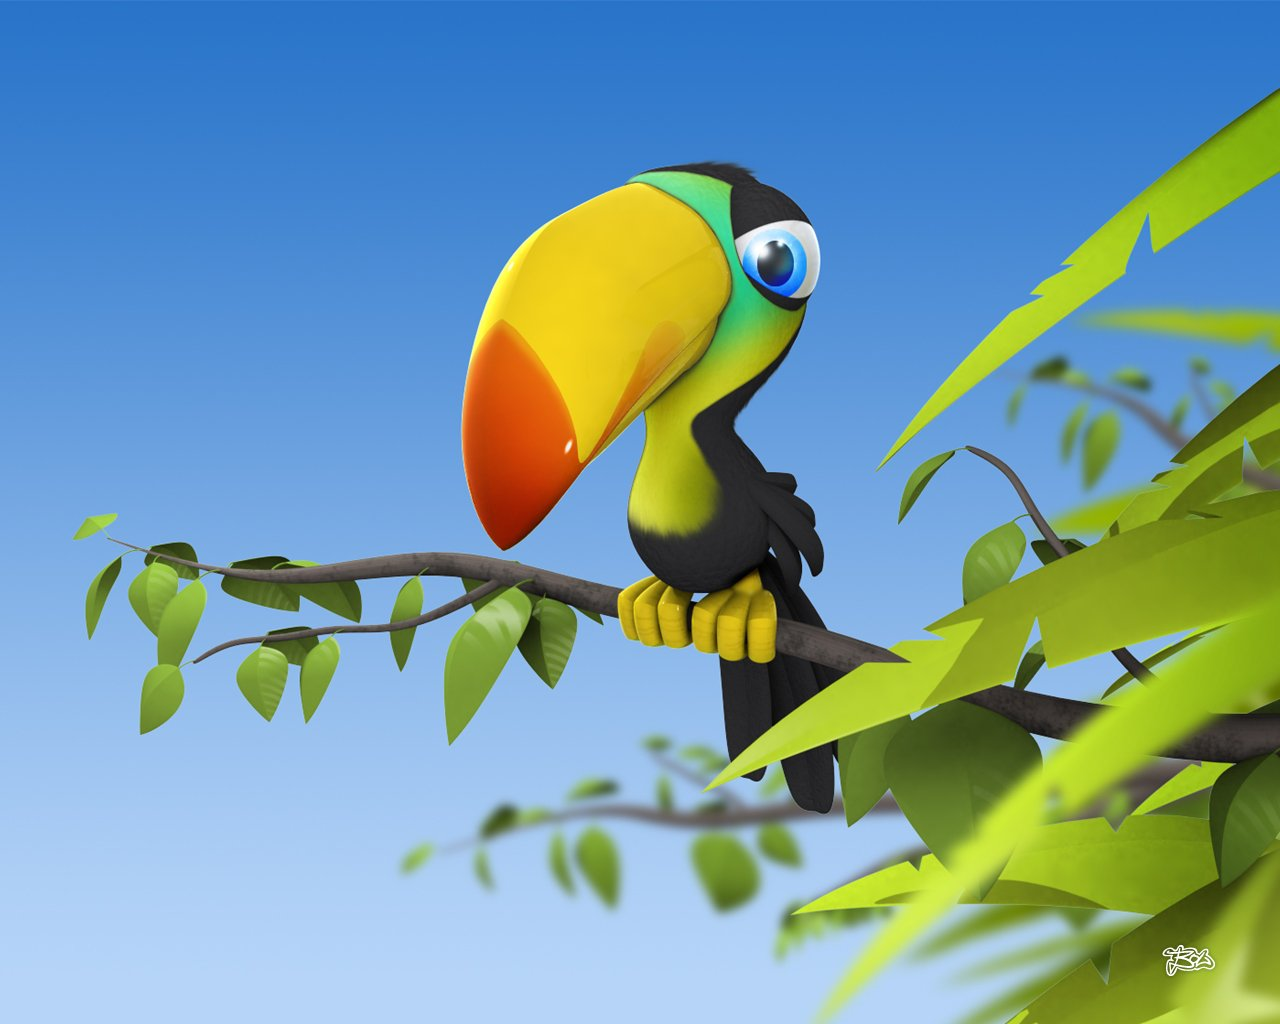 Animals Zoo Park Funny 3D Cartoon Wallpapers   Desktop Background 1280x1024